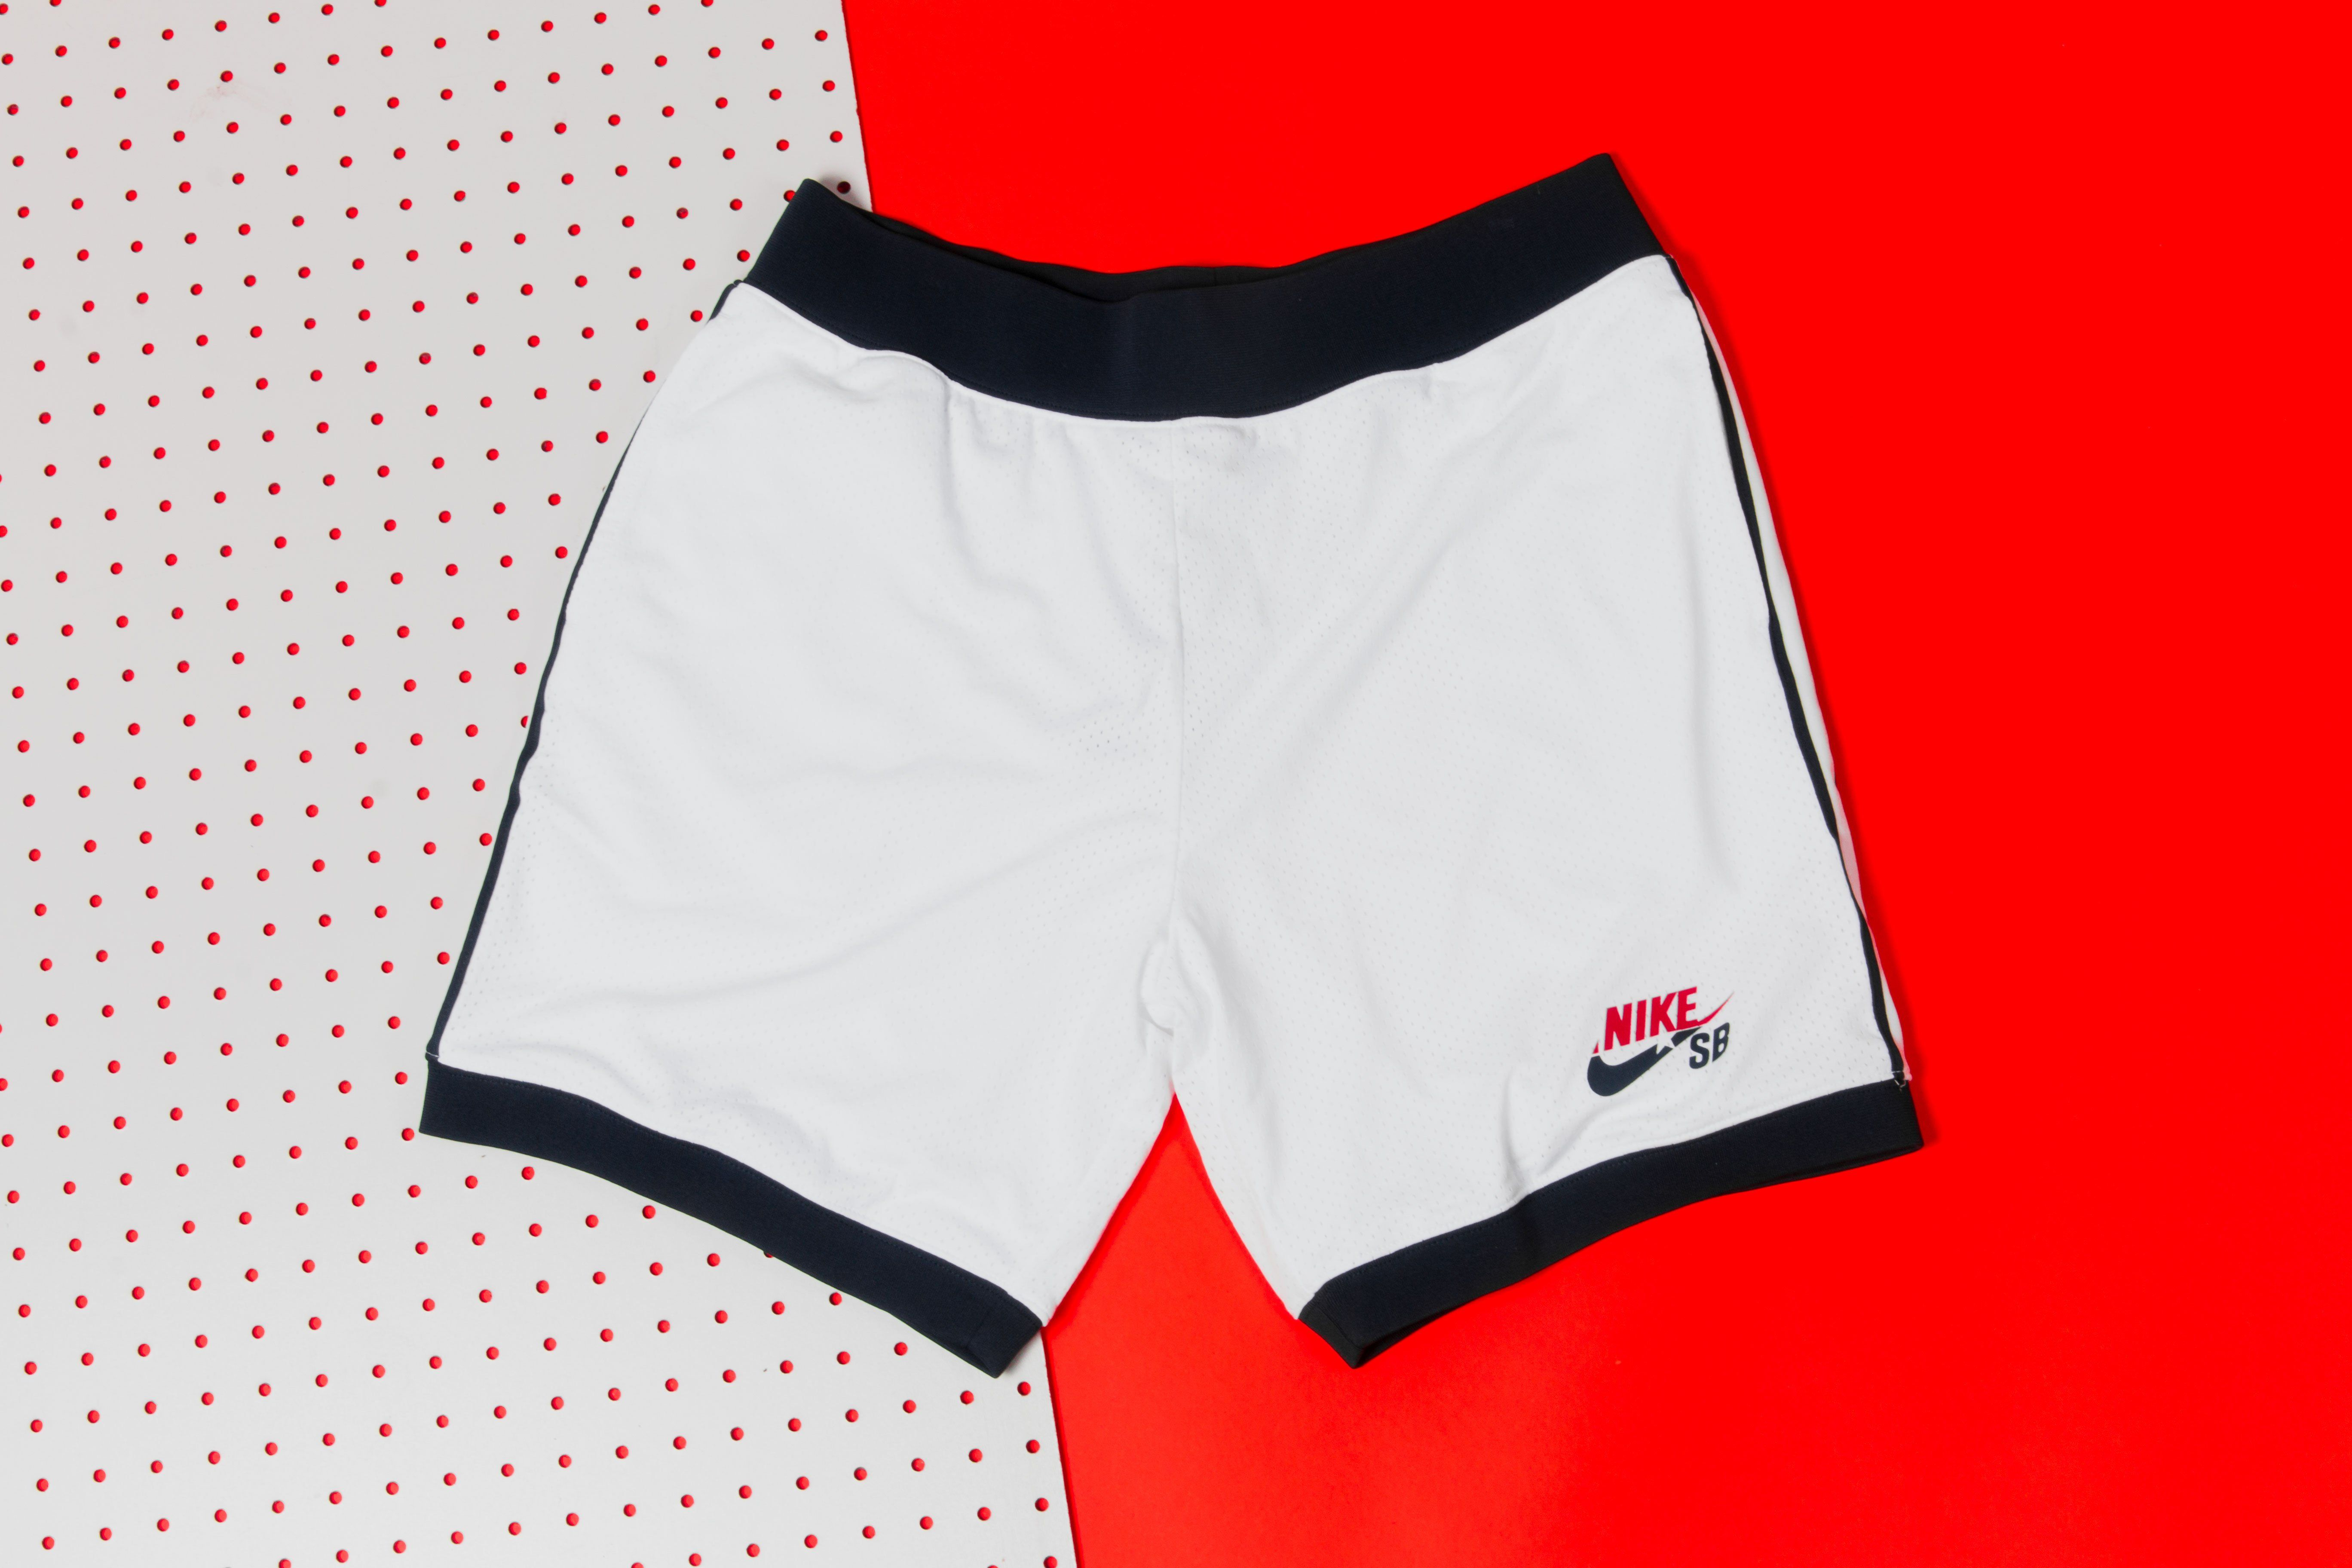 409a3465a4 Nike SB - Classic Court Short (White/Navy) | Products | Nike SB ...